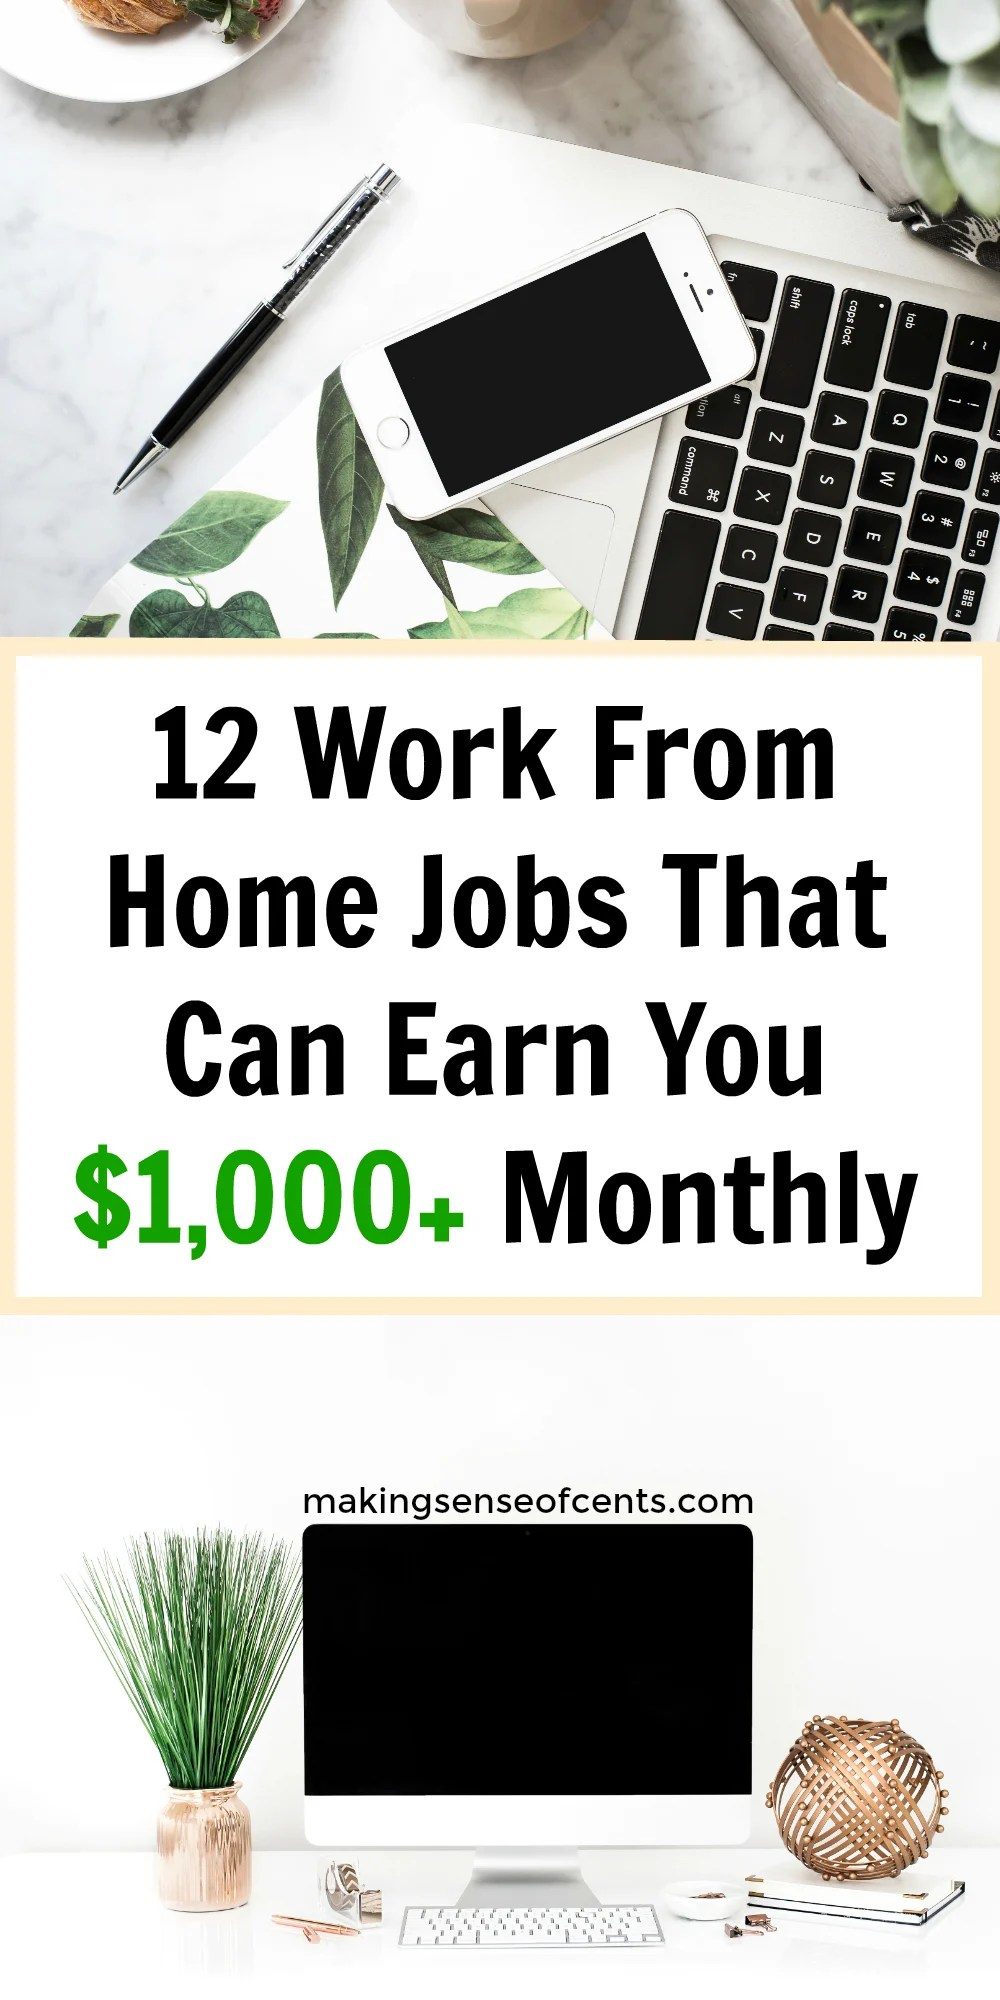 Yes Bank Home Loan Career How To Earn Money From Home 12 Work From Home Jobs